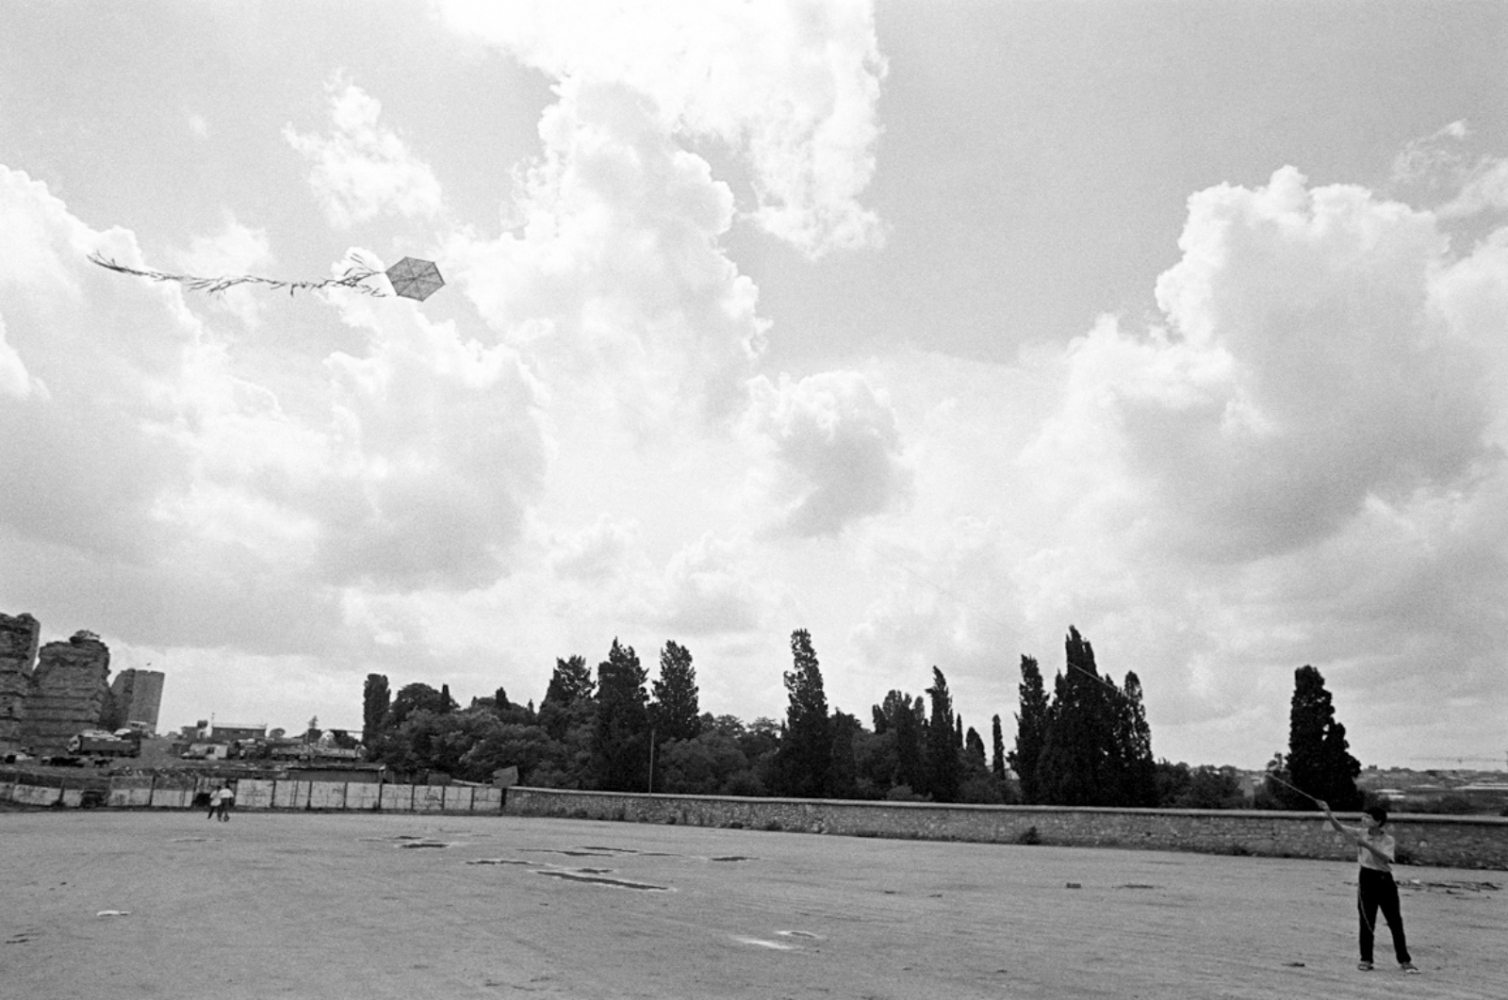 Flying Kite, Turkey, Summer 1997